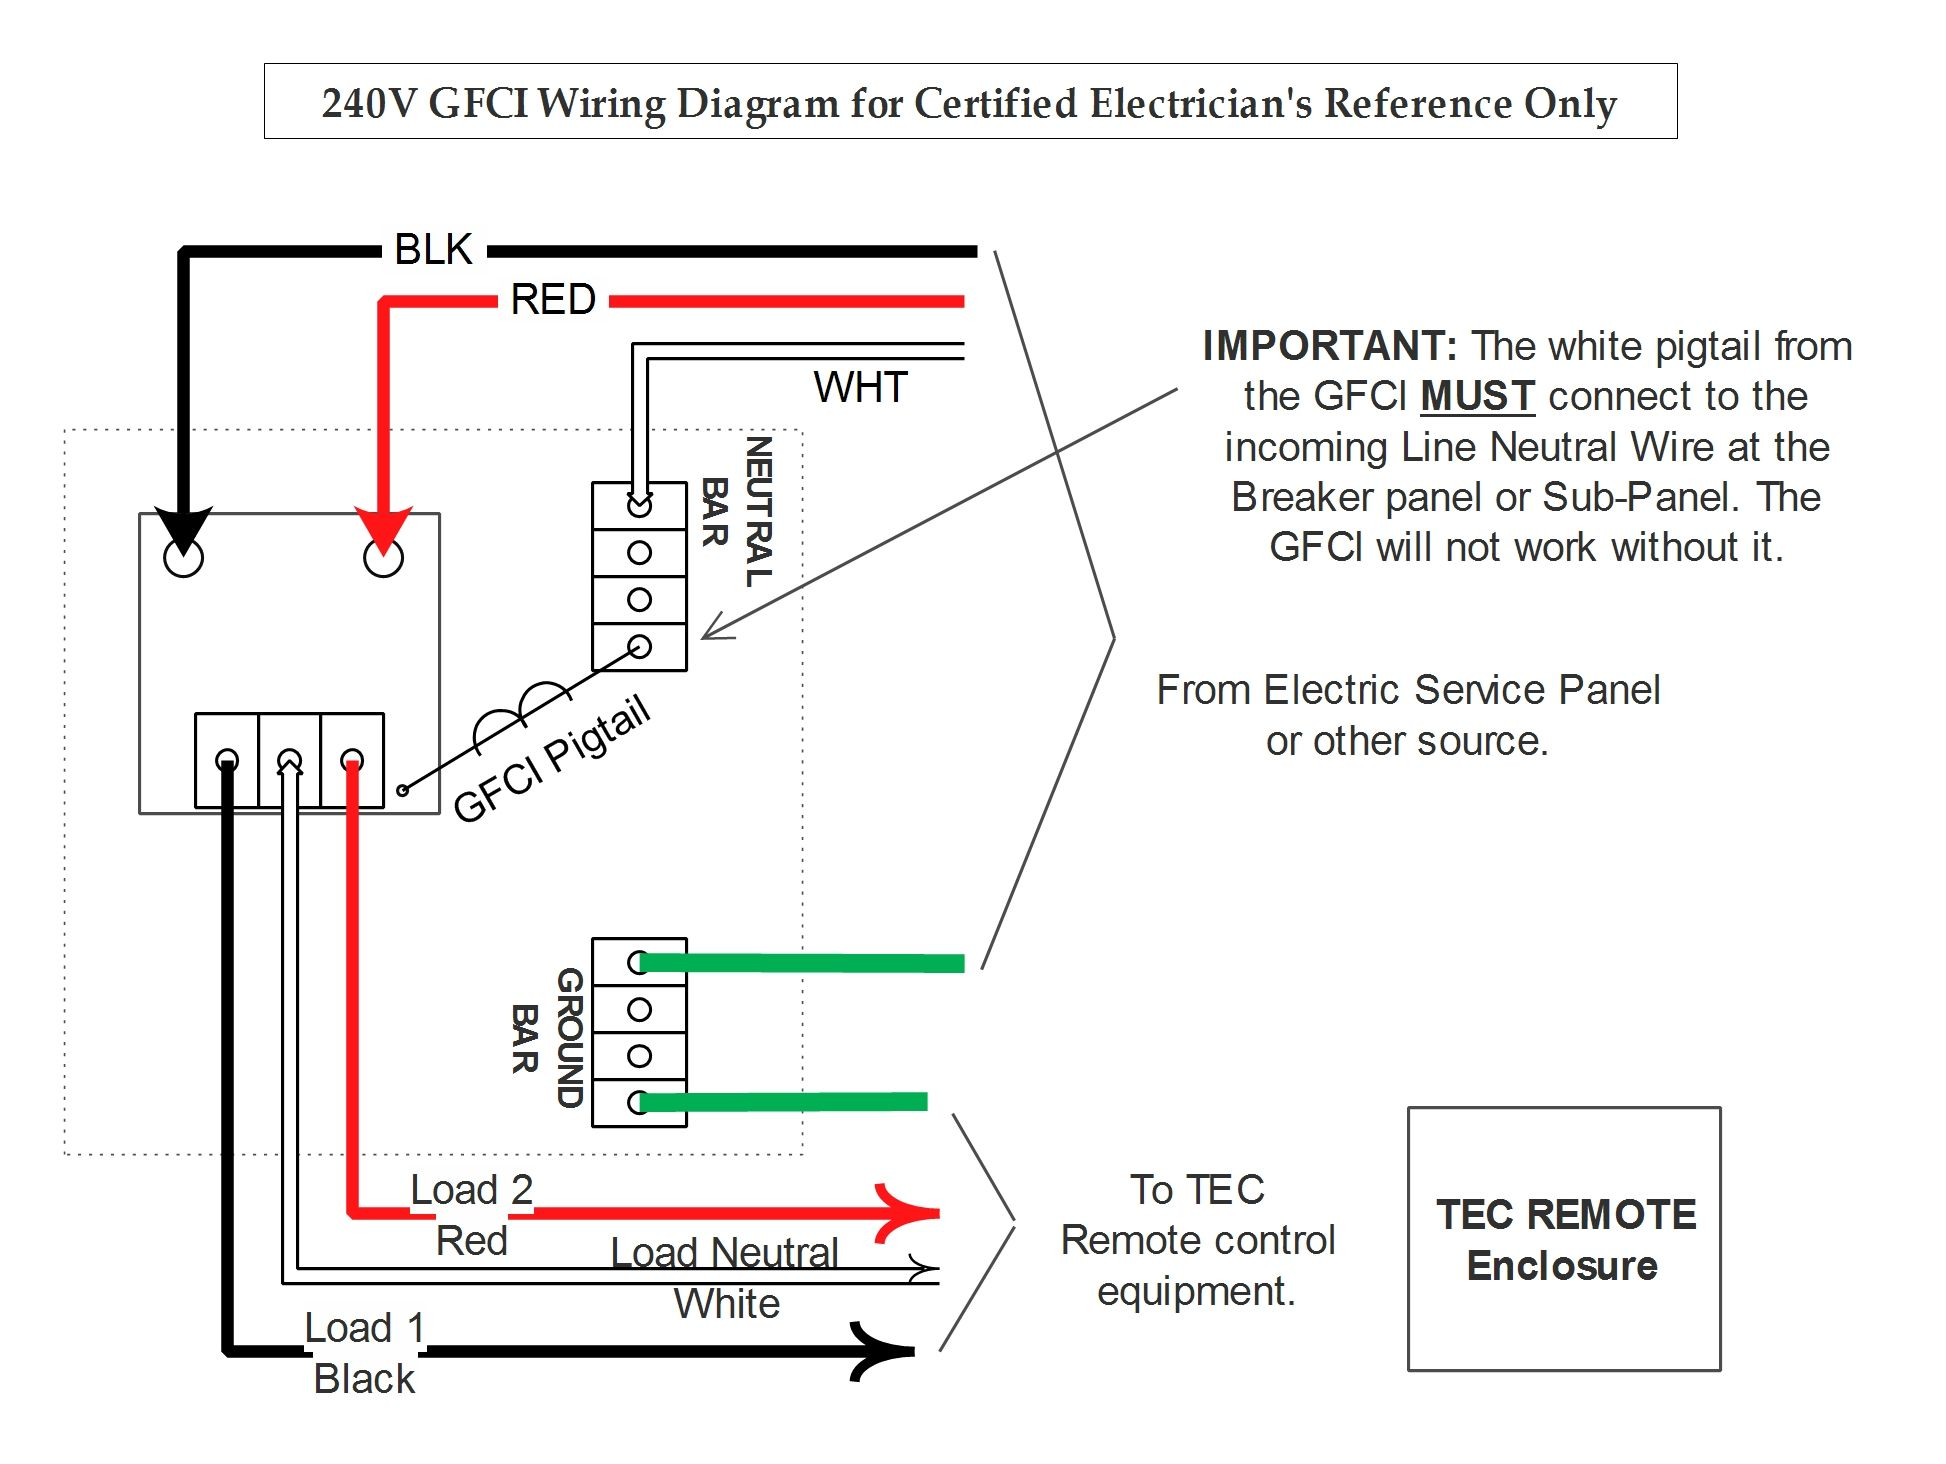 switch wiring diagram as well led light wiring diagram in addition rh abetter pw